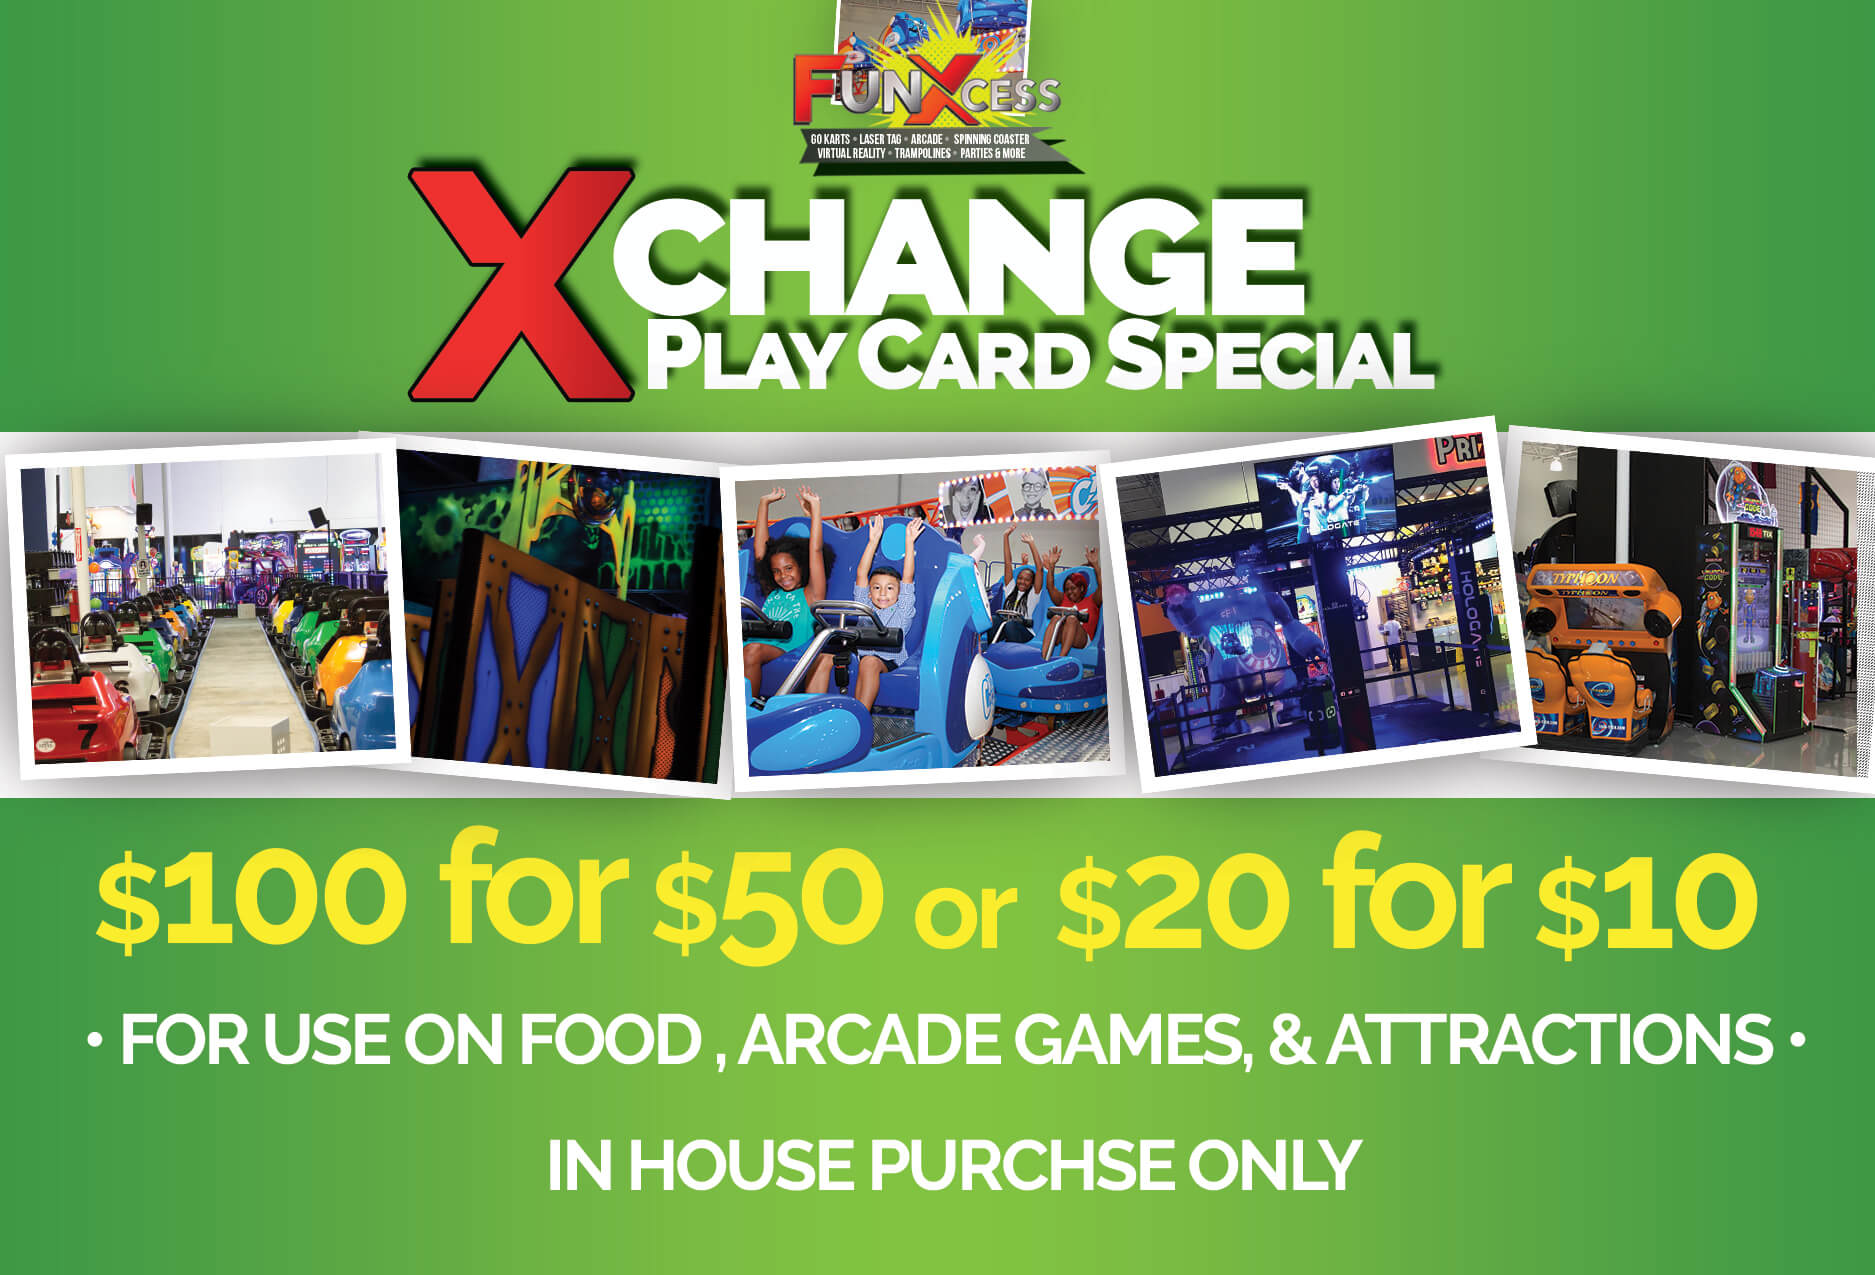 Xchange-Play-Card-Special-FunXcess-1 (1).jpg